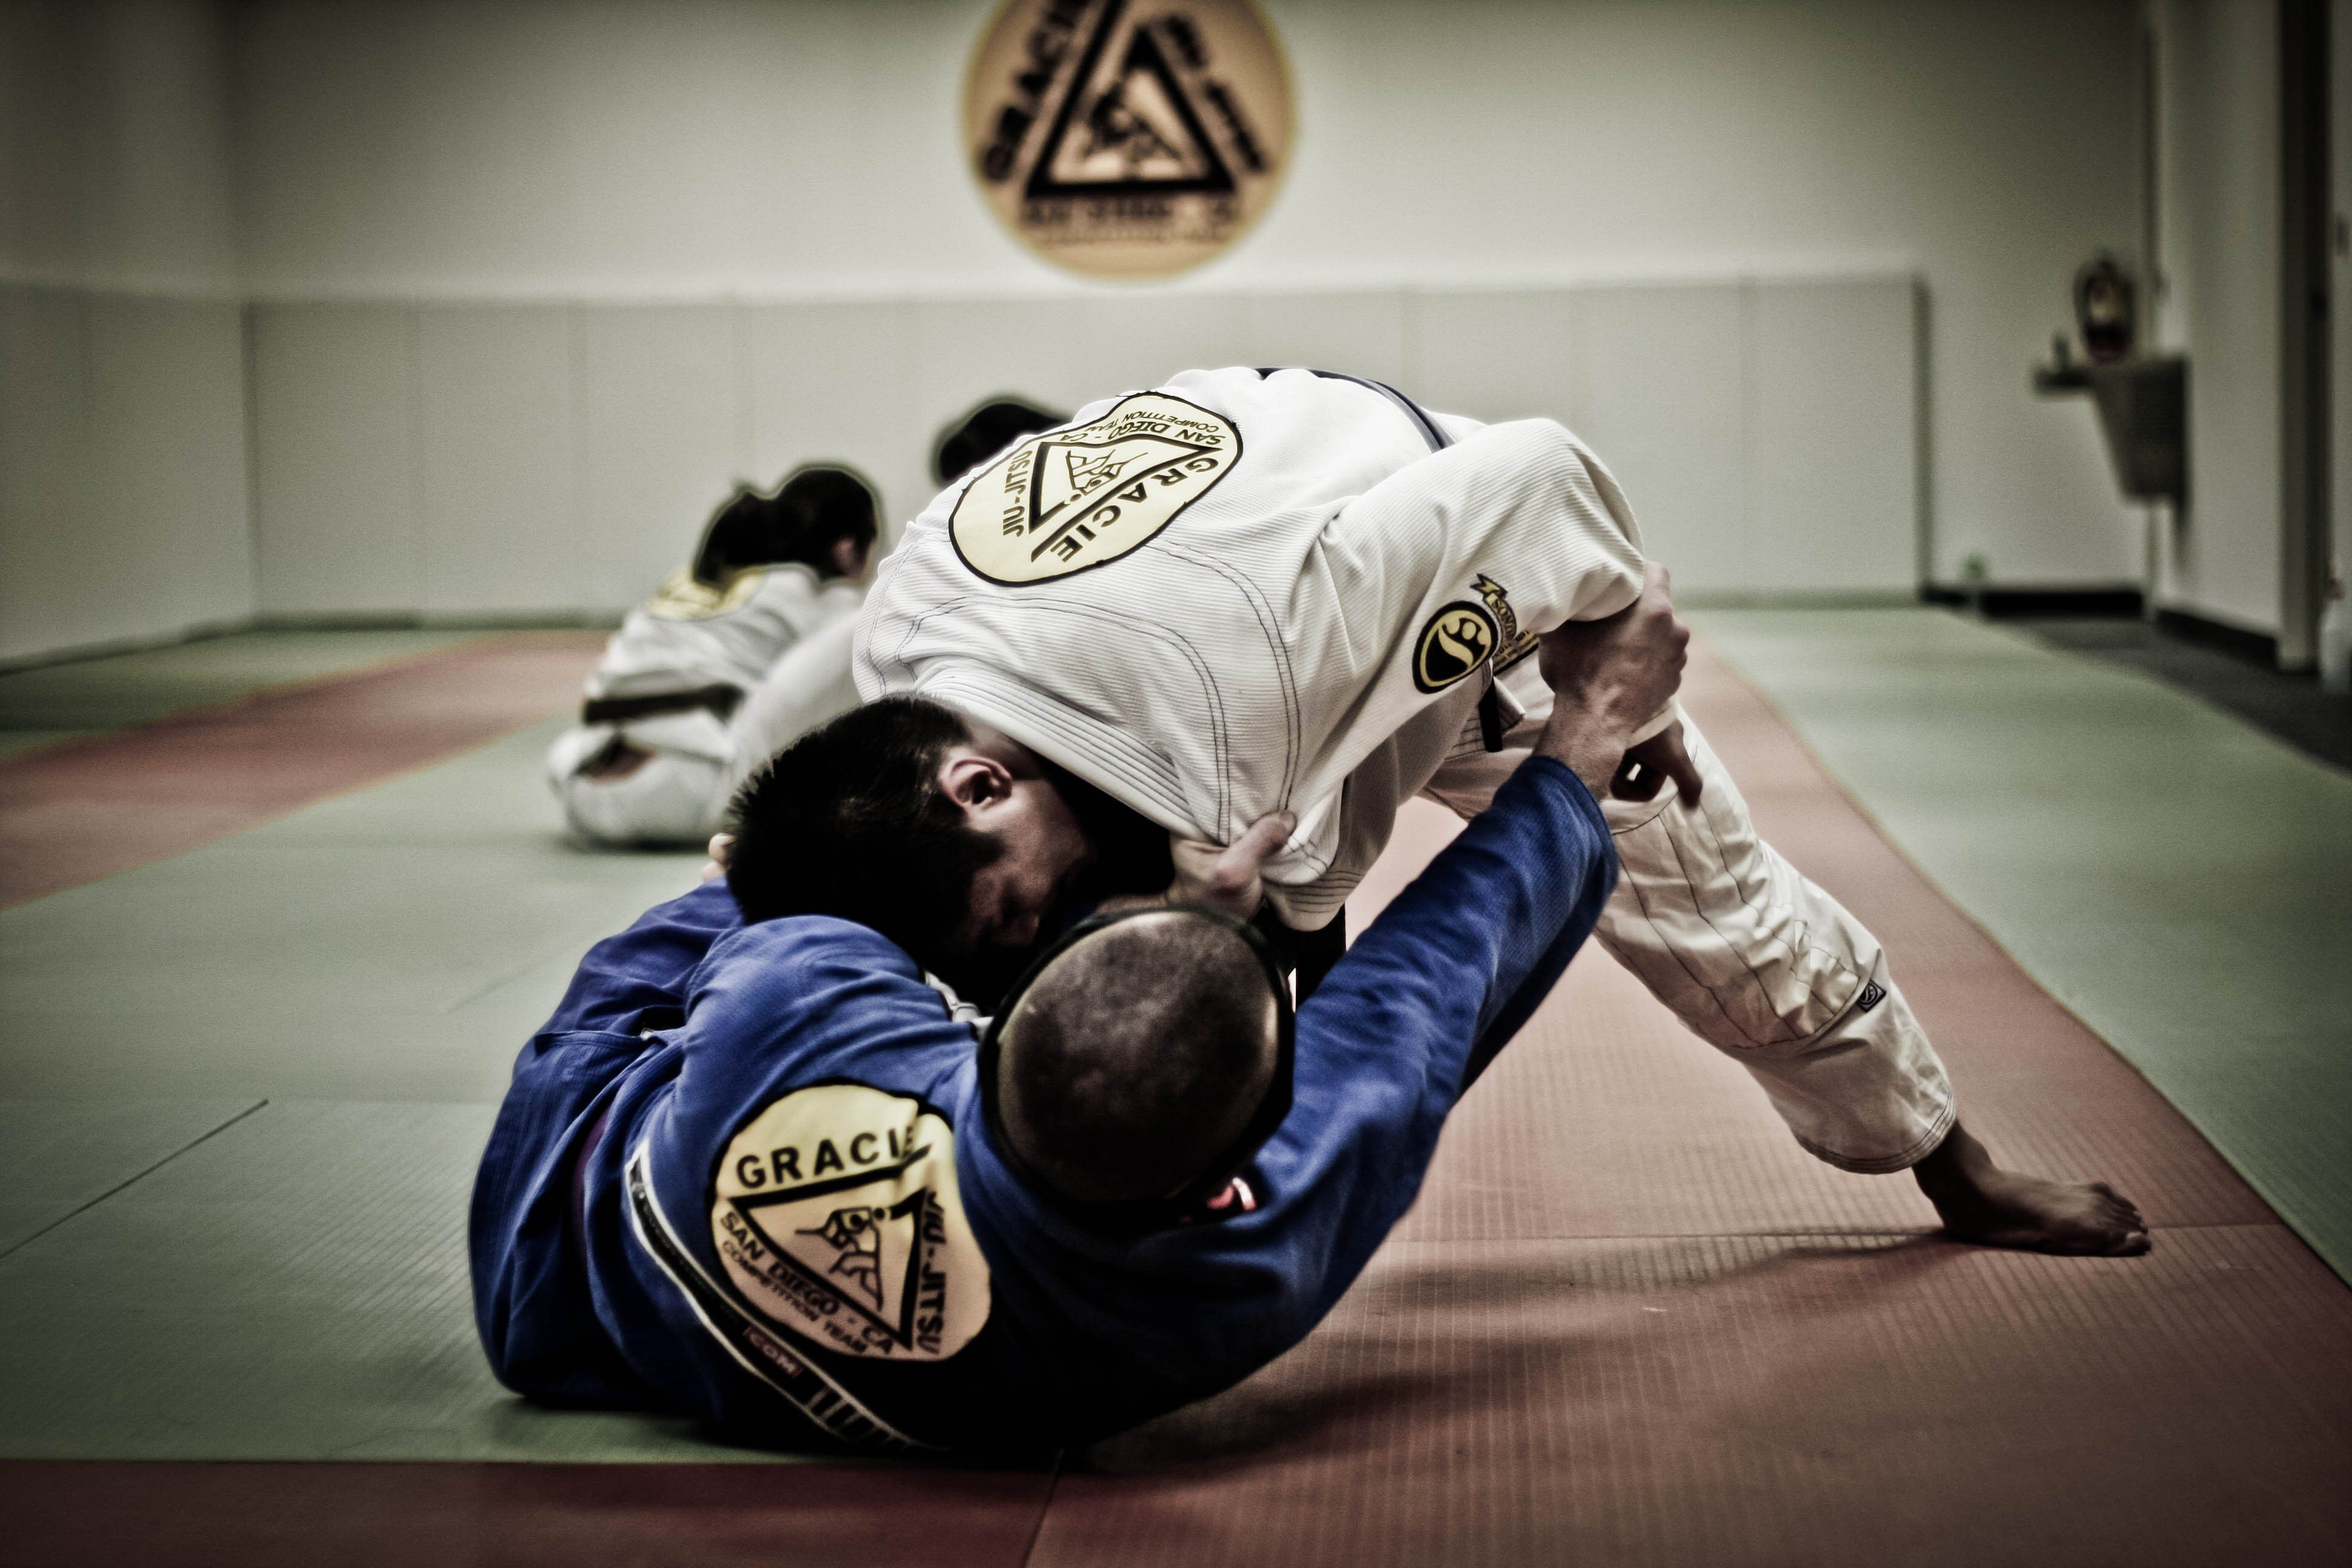 Jiu jitsu wallpaper | 3888x2592 | 237454 | WallpaperUP | All ...